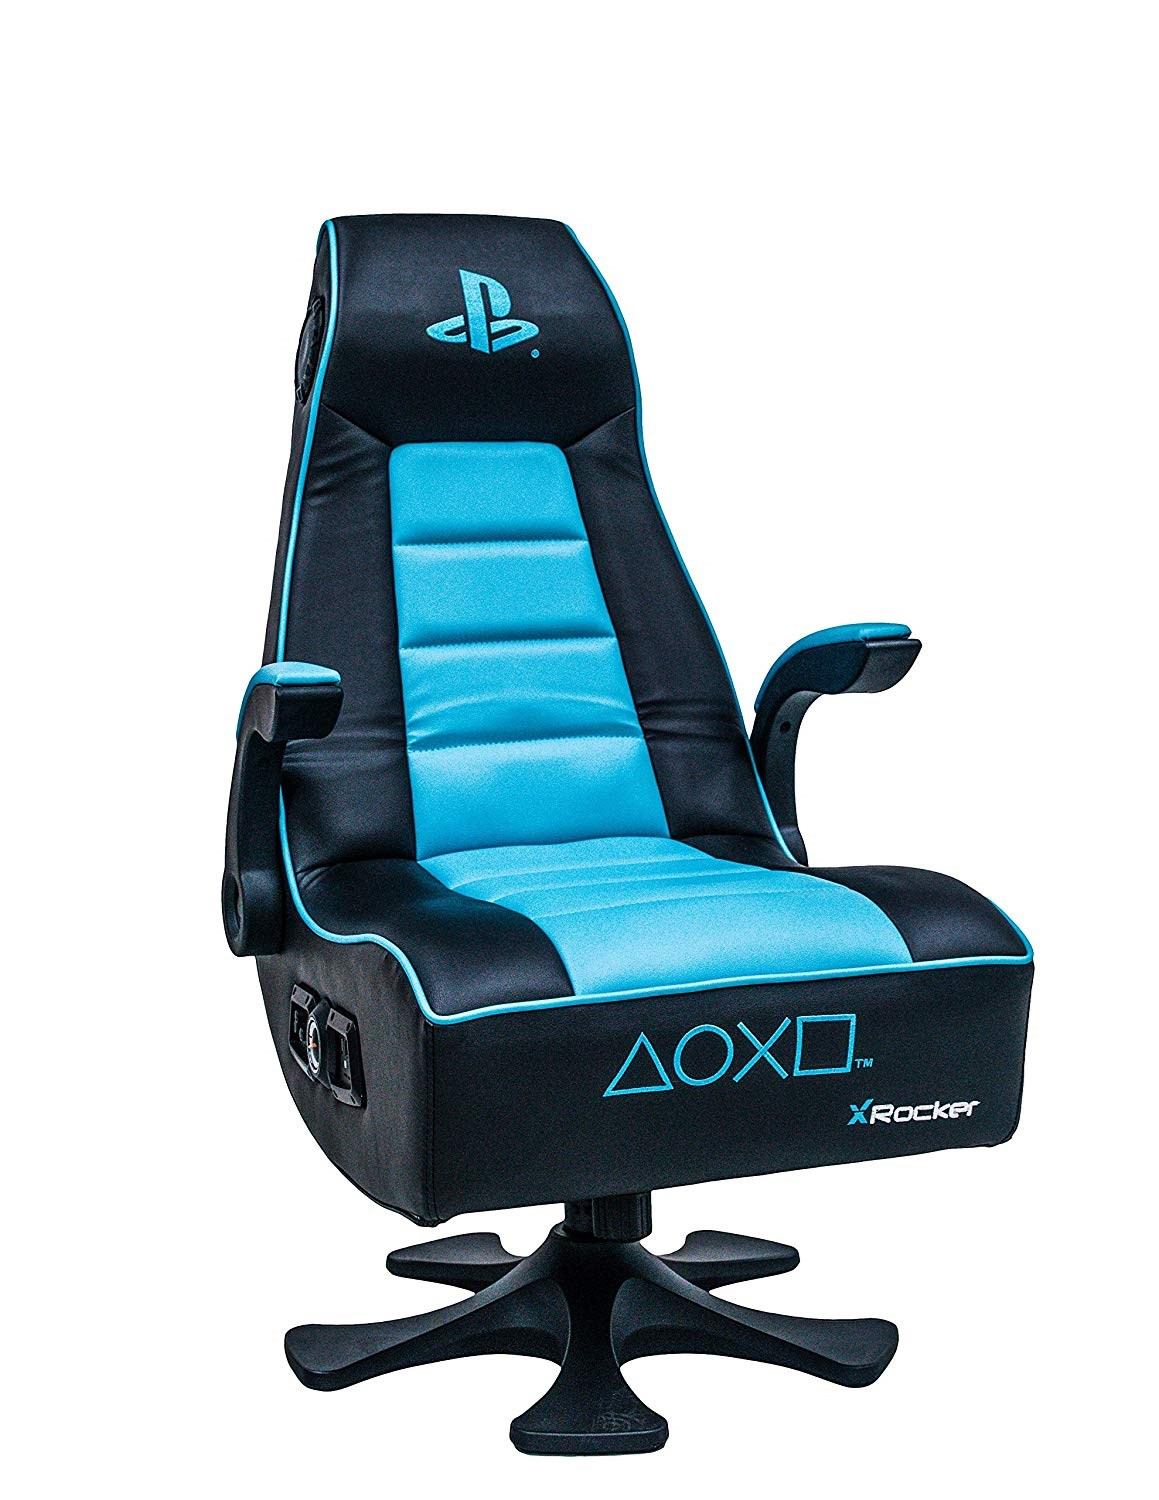 Admirable X Rocker Playstation Infiniti 2 1 Gaming Chair With Speakers 5106001 Machost Co Dining Chair Design Ideas Machostcouk